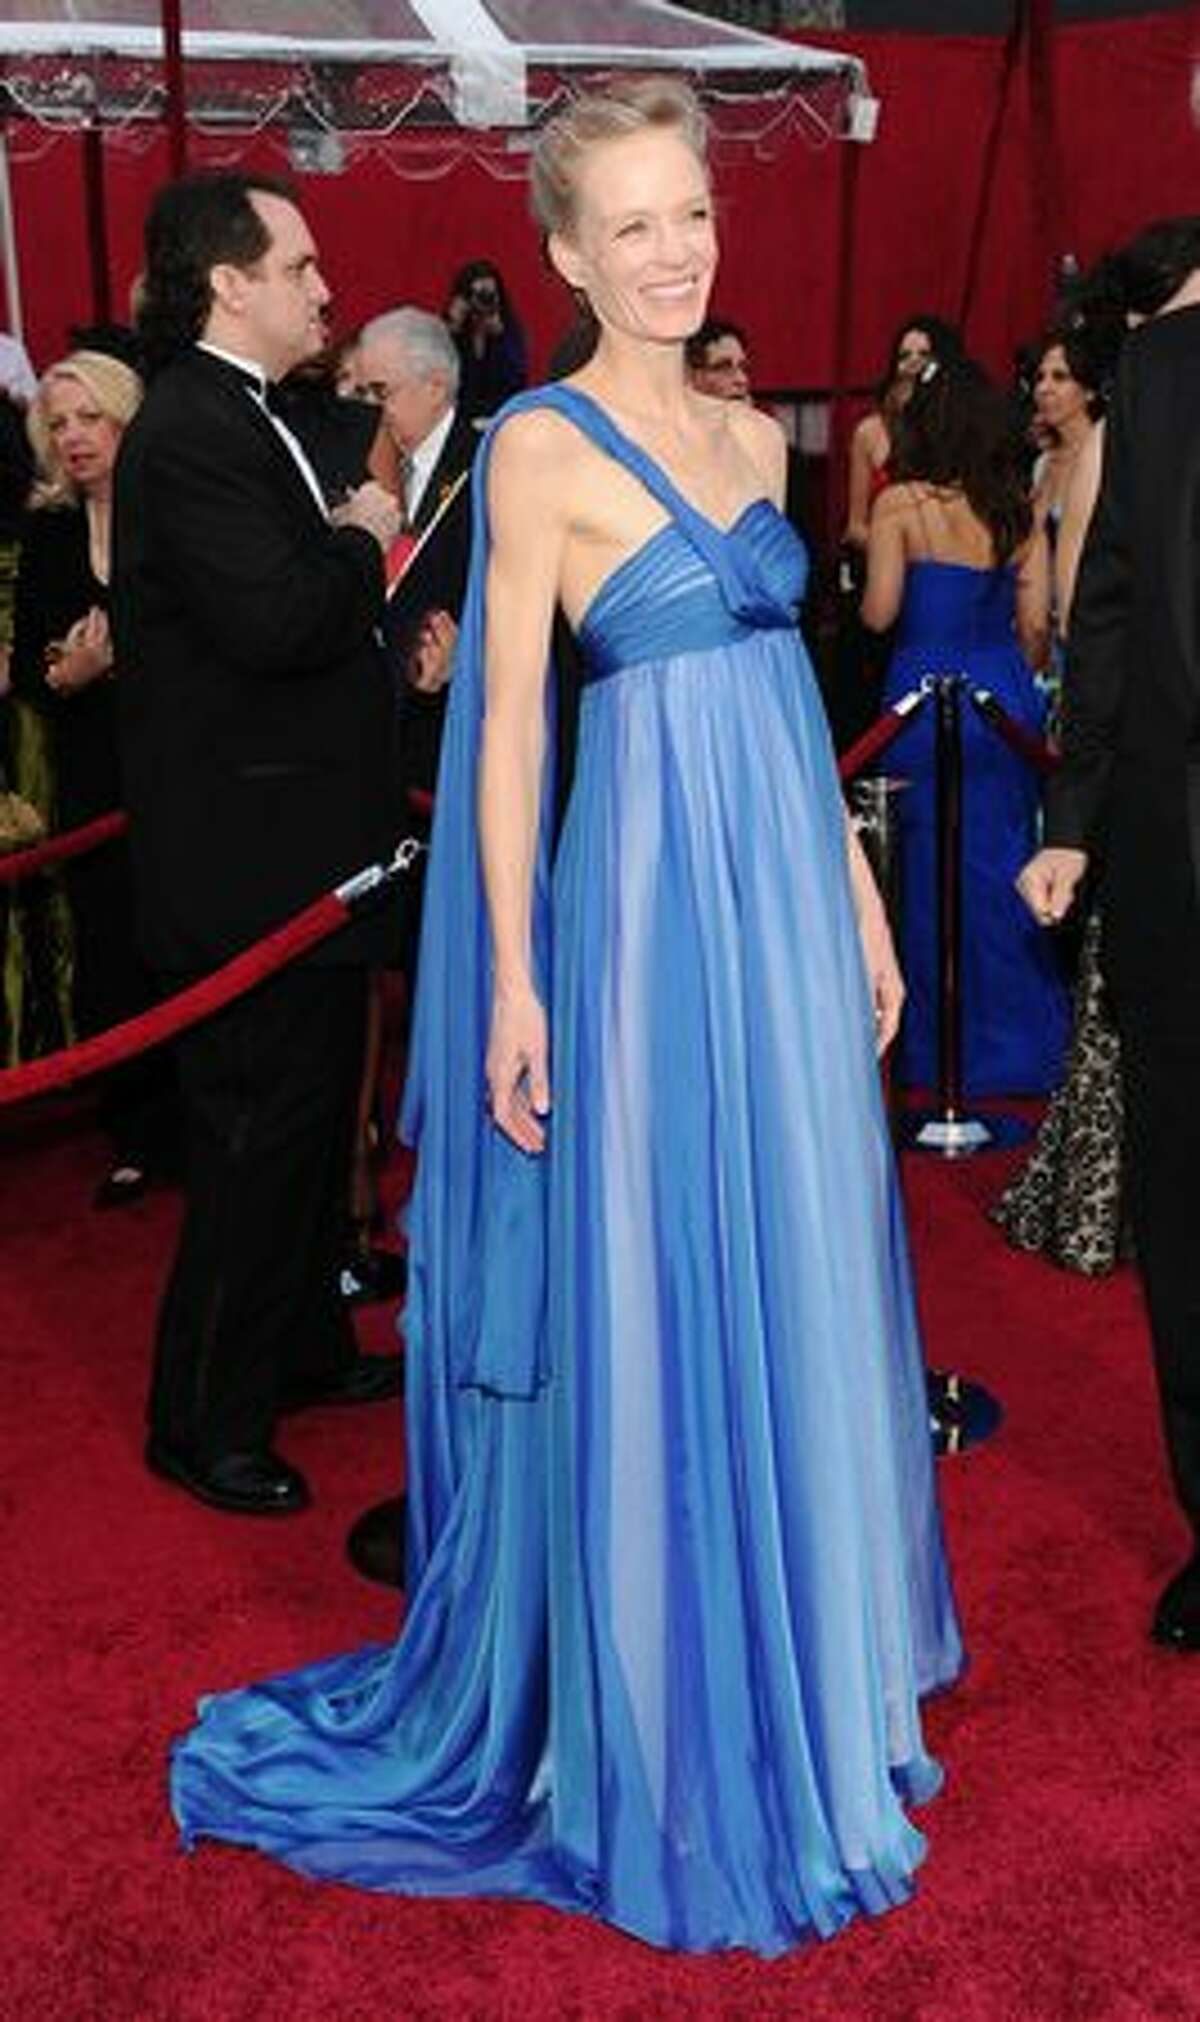 Suzy Amis used to be a pretty good actress before she got married to director James Cameron. Now she shows up with him at awards shows, wearing old-style gowns that don't fit her bony frame. And trust us, she has loads of gorgeous hair.